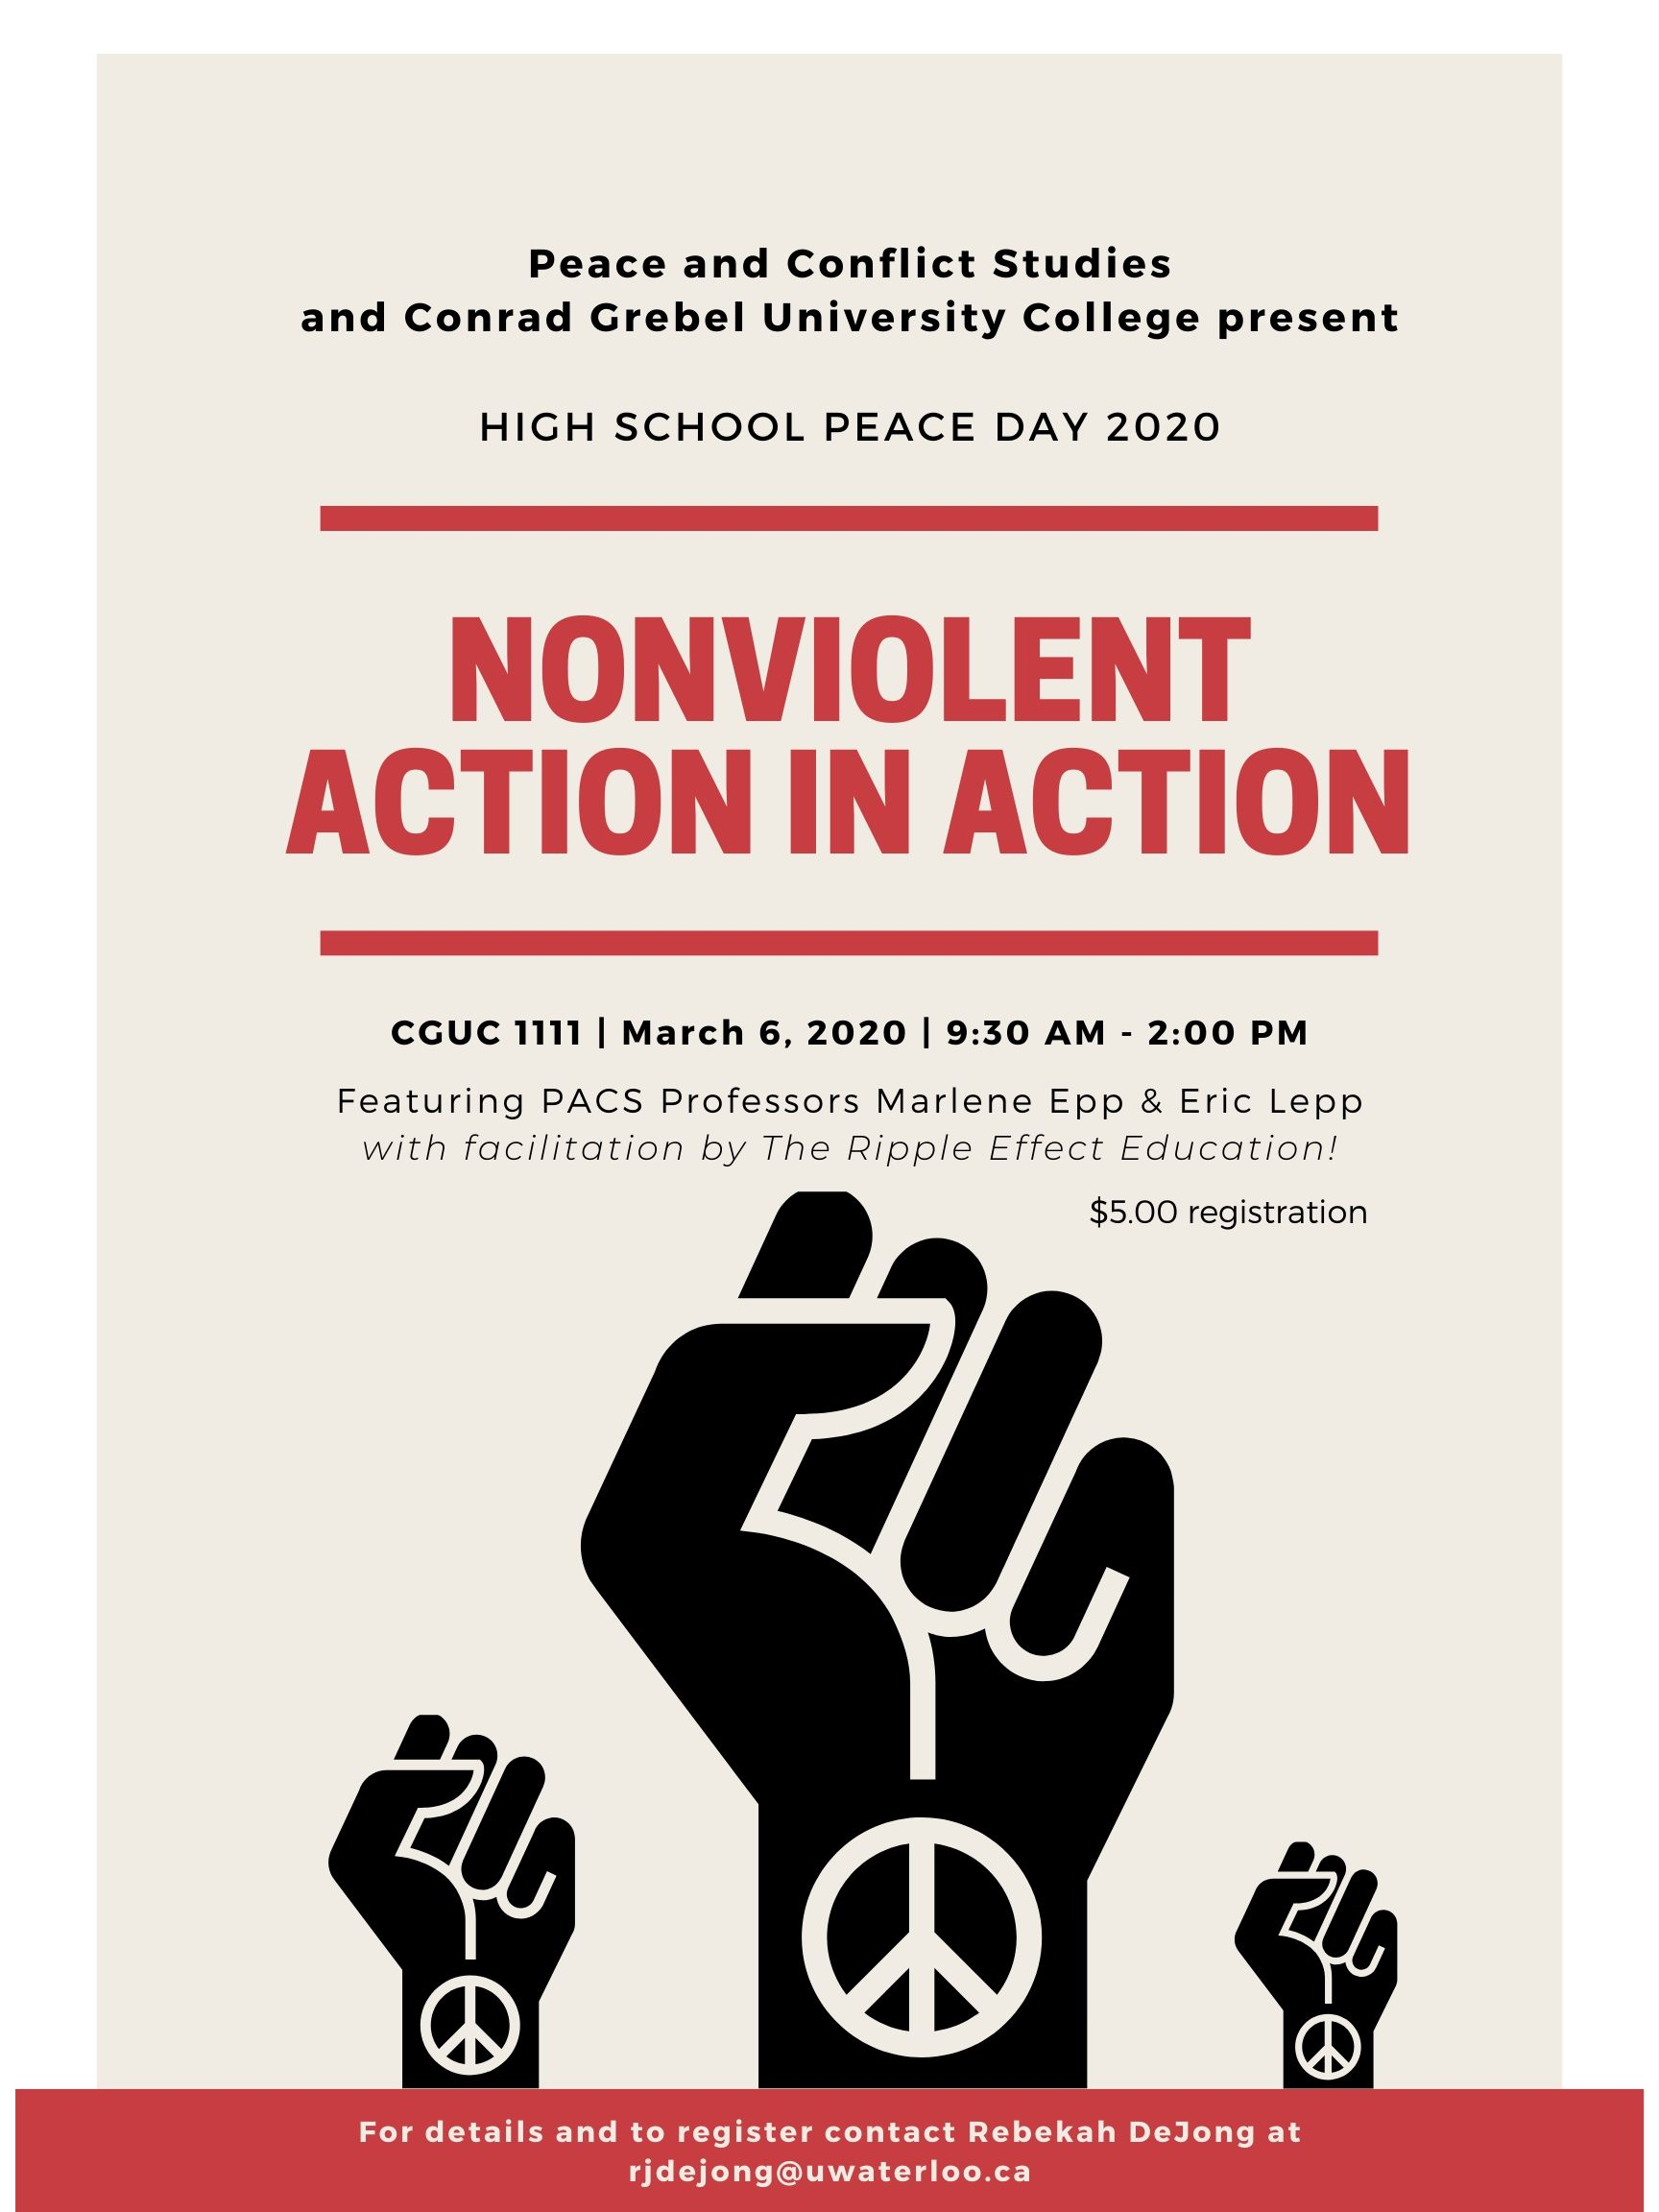 Nonviolent action in action poster that shows three fists that are raised in solidarity and peaceful protest